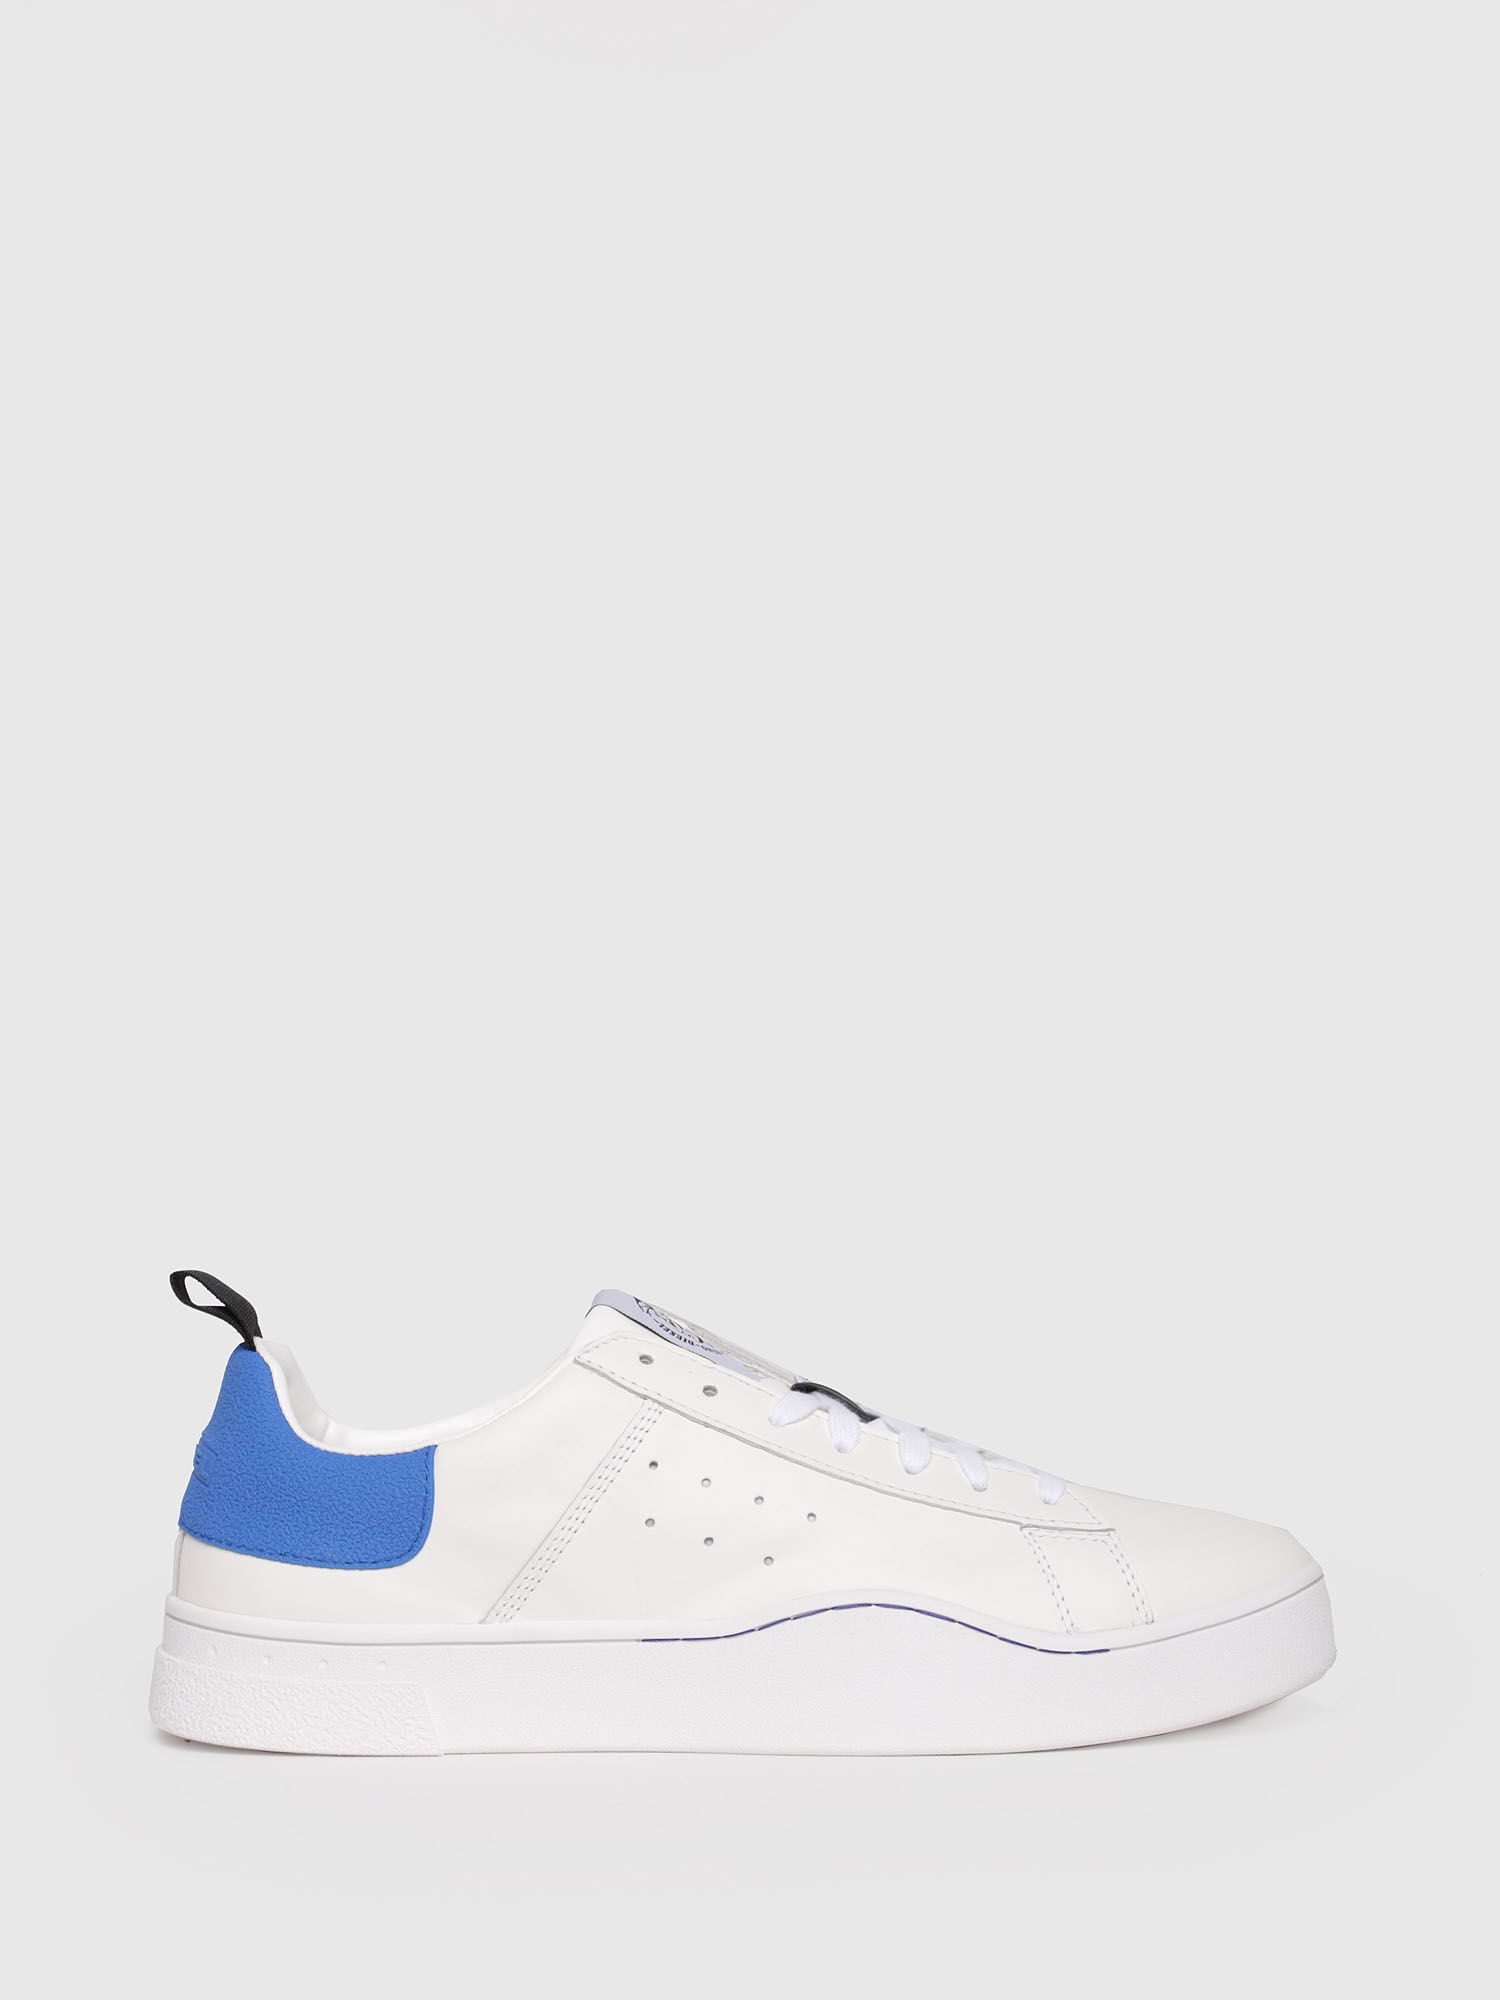 Diesel - S-CLEVER LOW,  - Baskets - Image 1